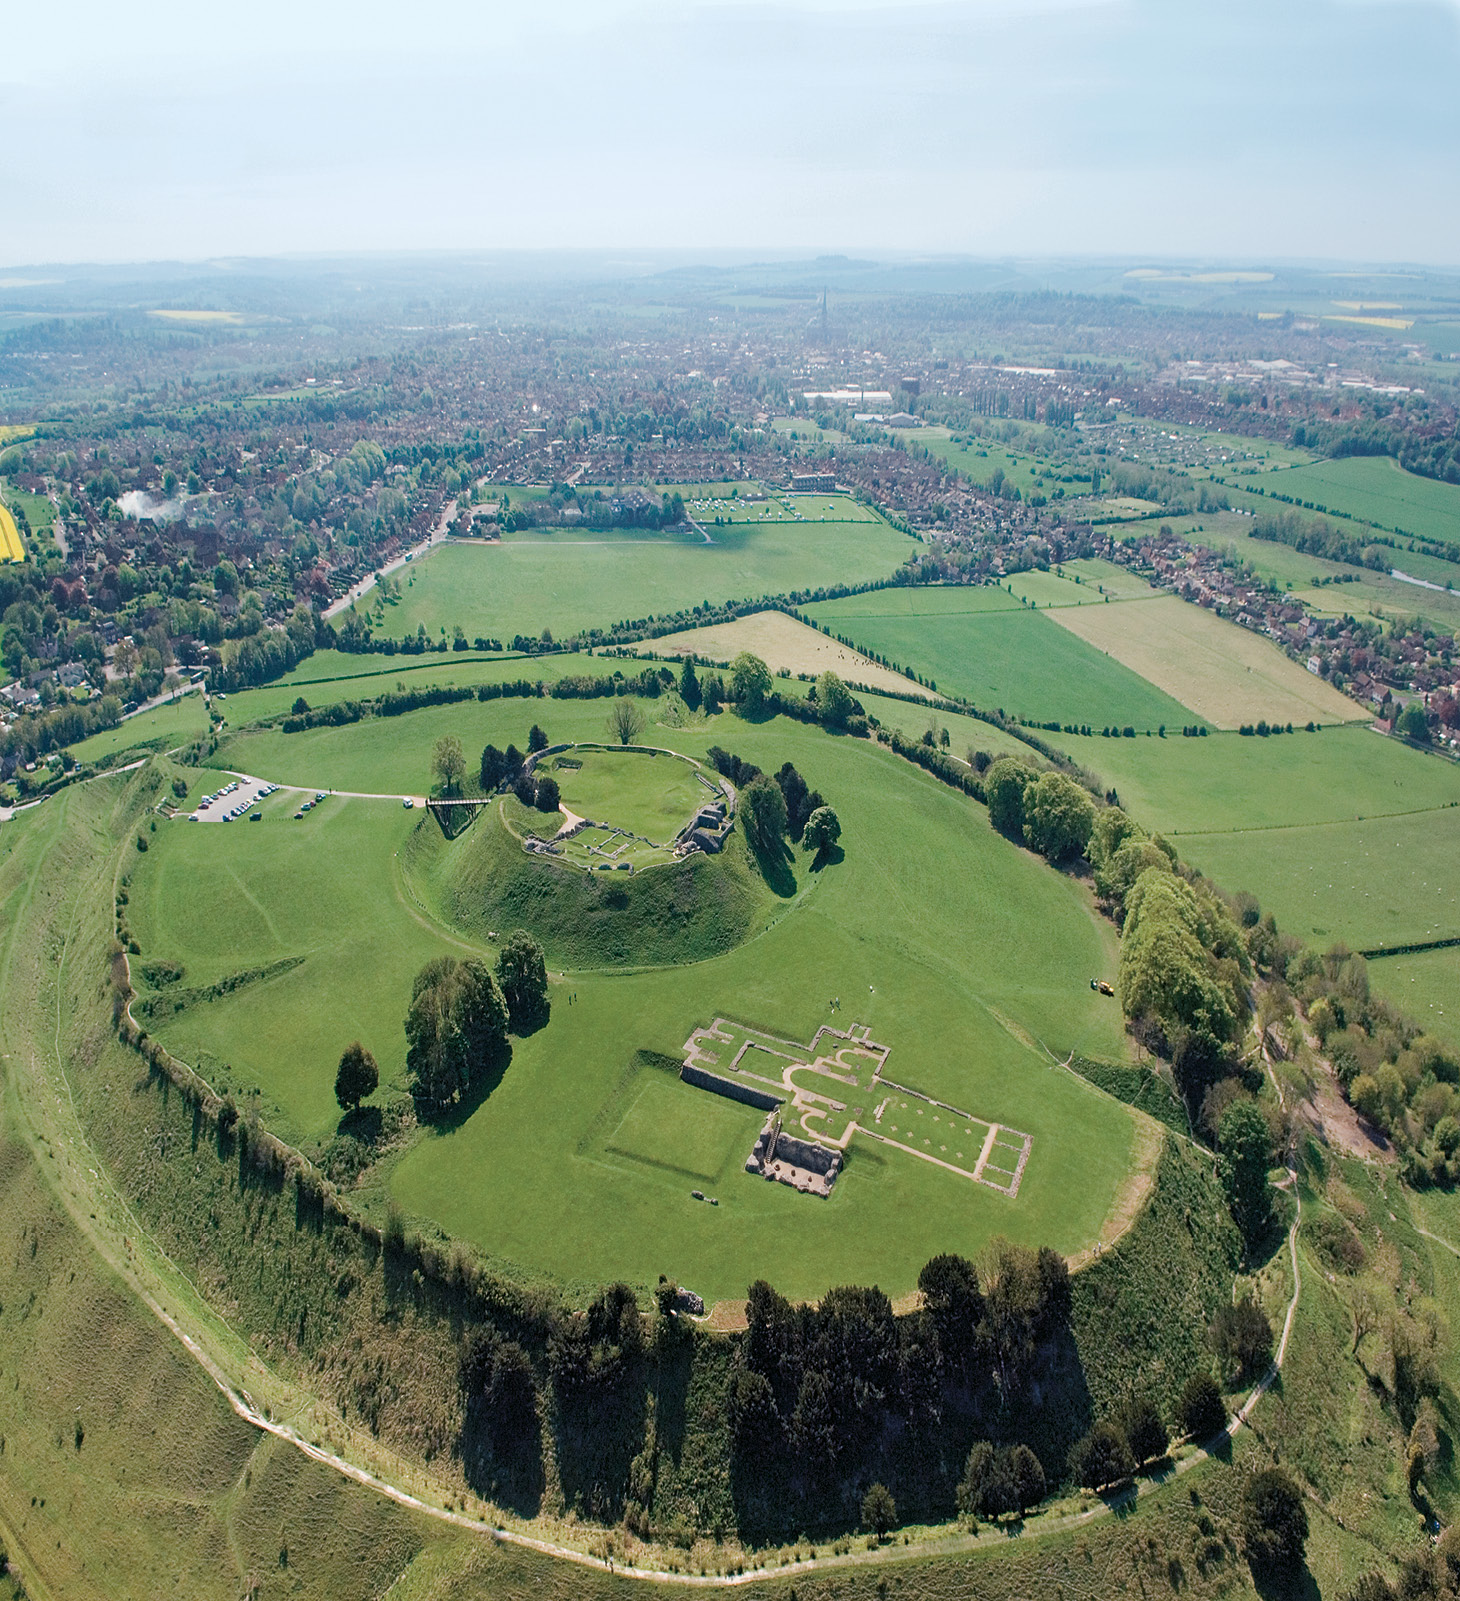 above Old Sarum. The now demolished great tower stood on top of the massive earthworks of the earlier Norman motte, which itself occupies an Iron Age hillfort, standing alongside the ruins of the